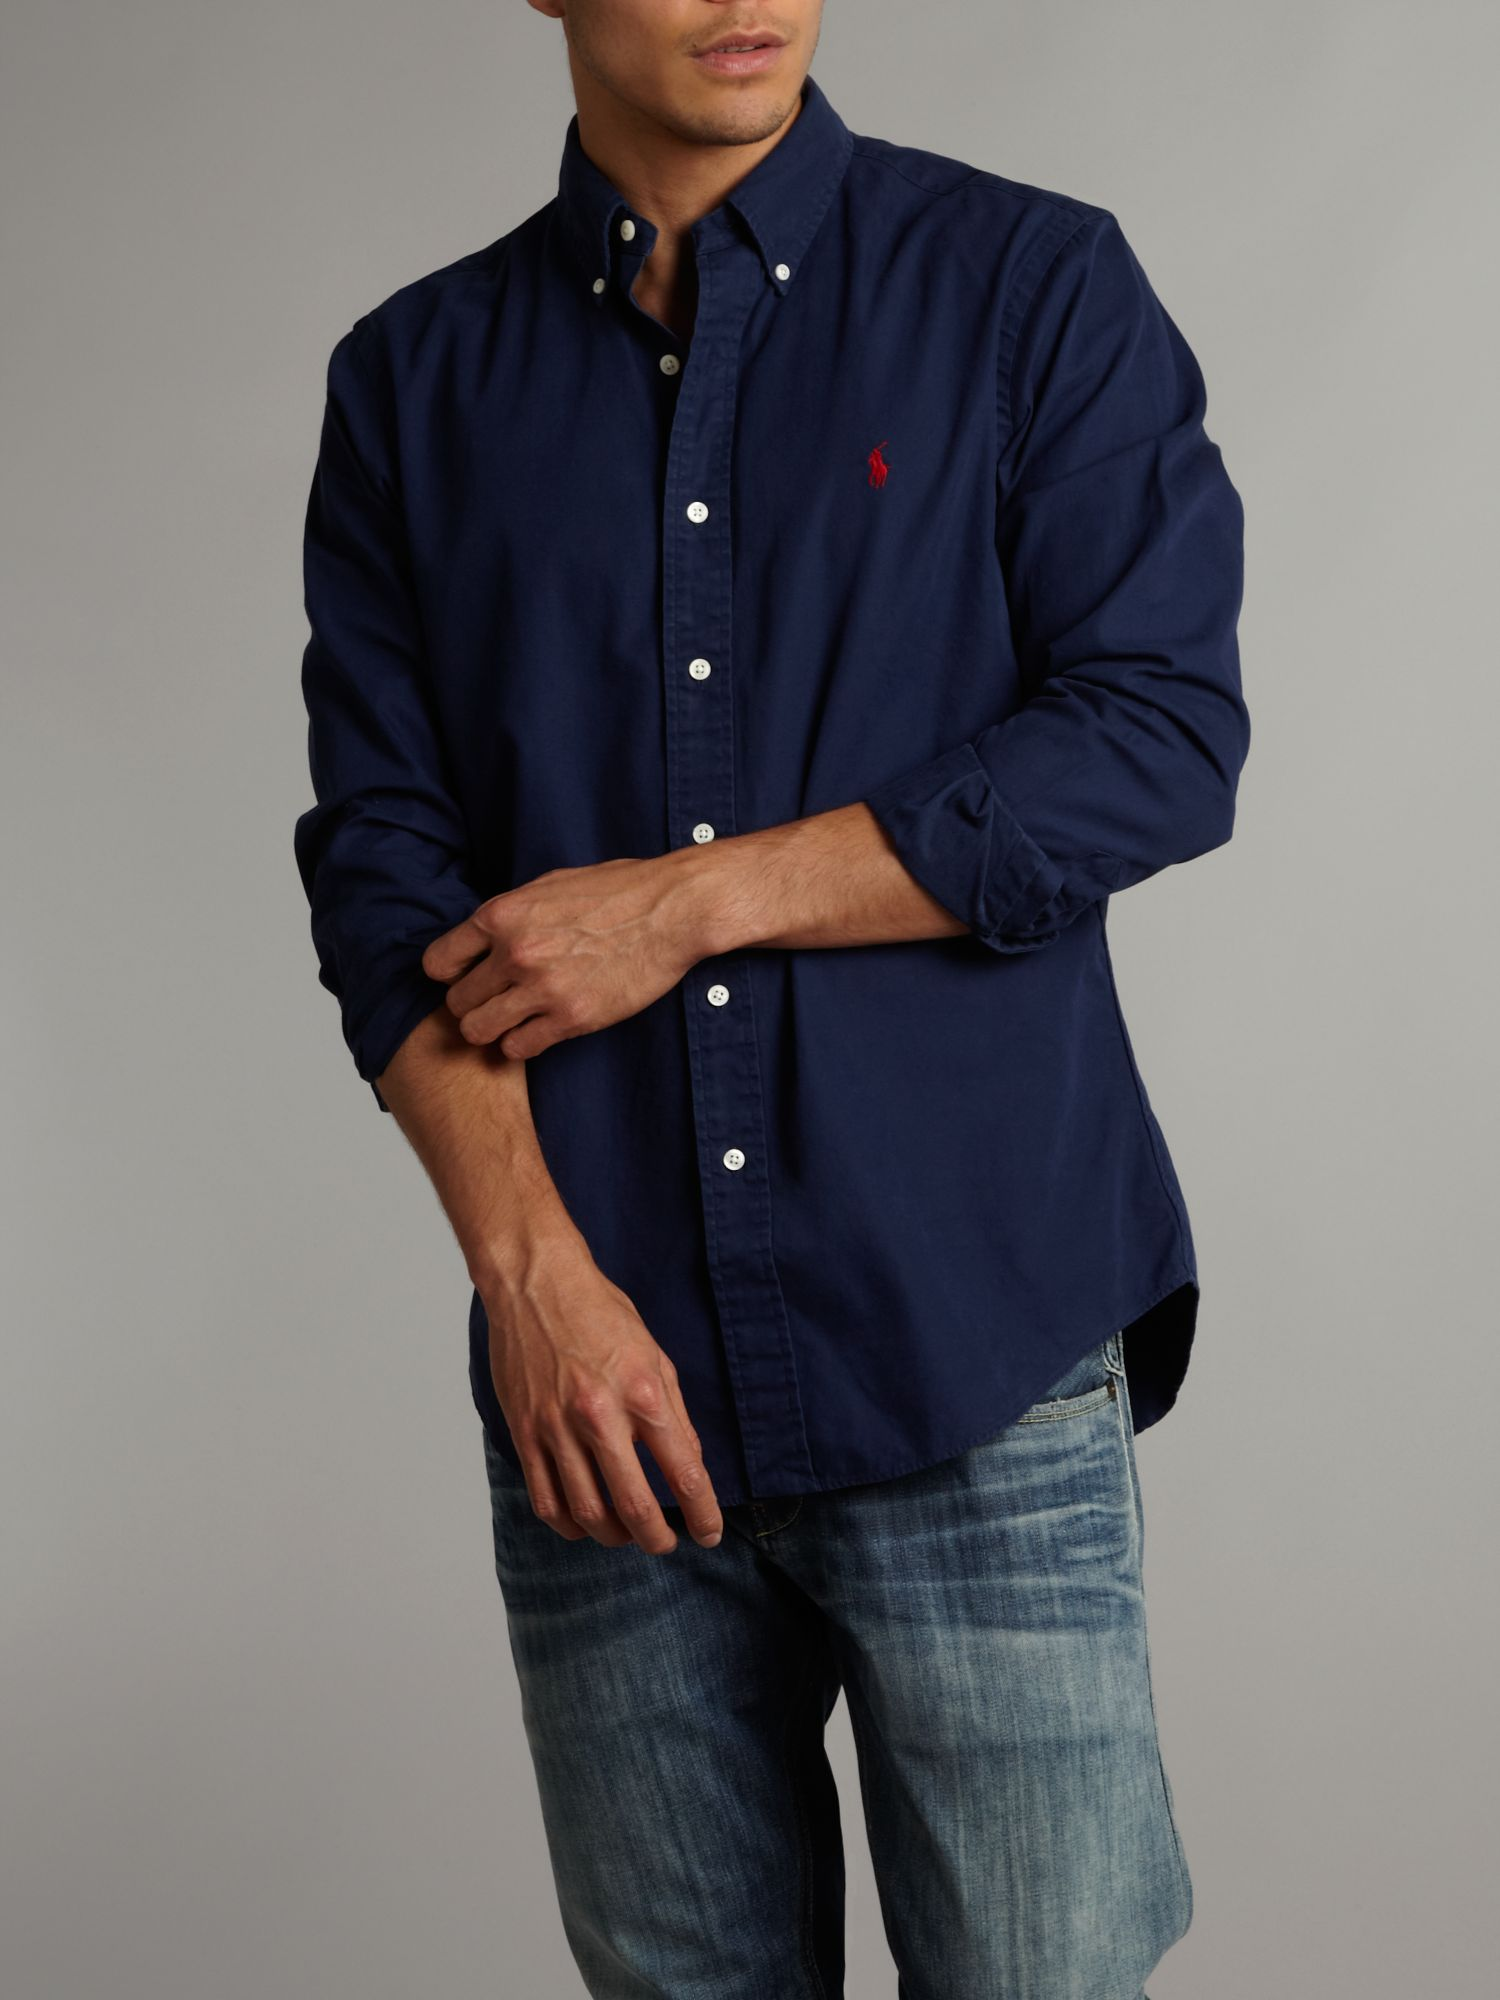 Polo Ralph Lauren Solid Chino Shirt In Blue For Men Lyst